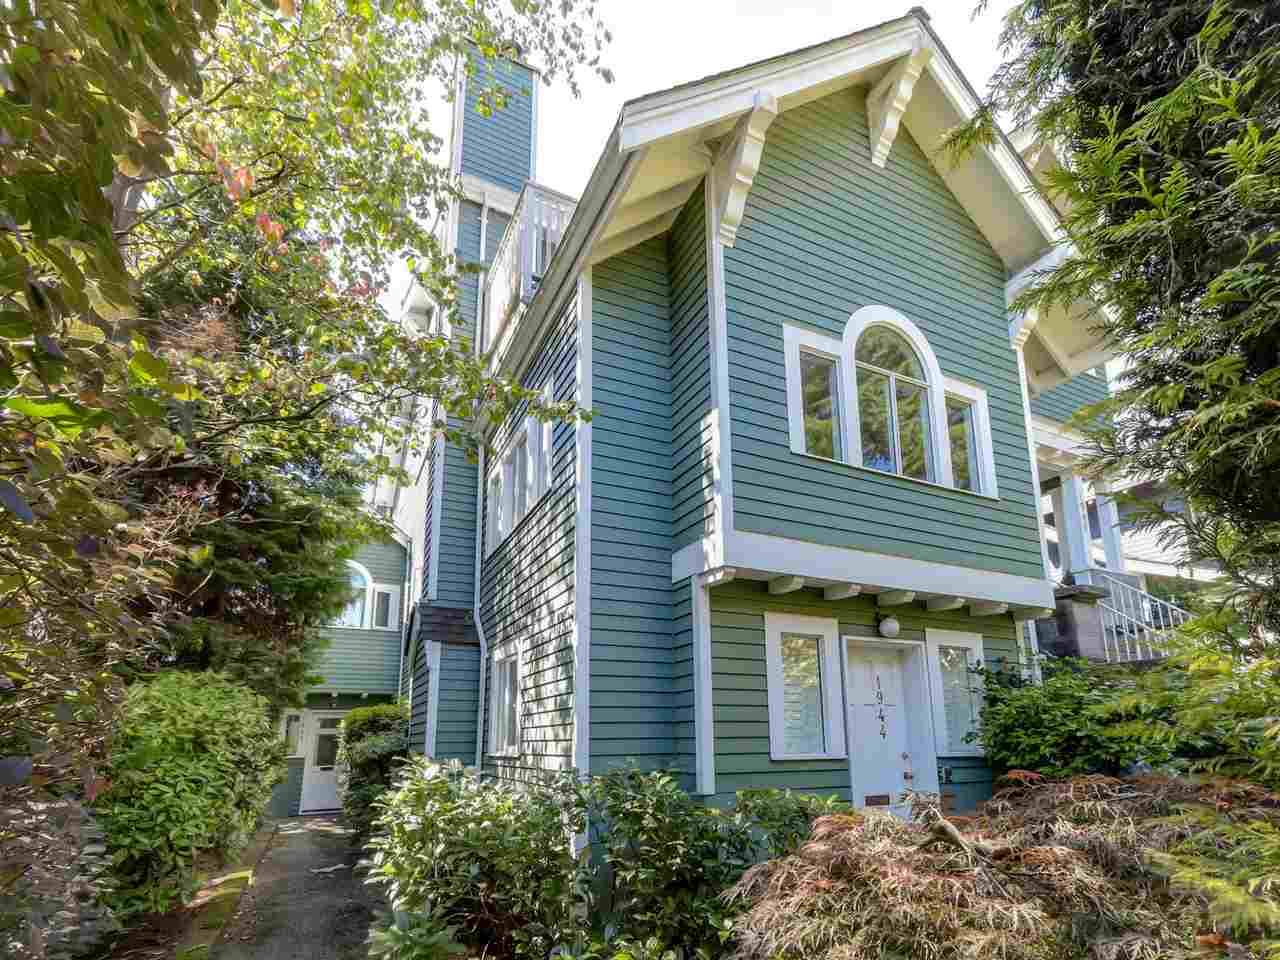 Main Photo: 1942 W 15TH Avenue in Vancouver: Kitsilano Townhouse for sale (Vancouver West)  : MLS® # R2088741